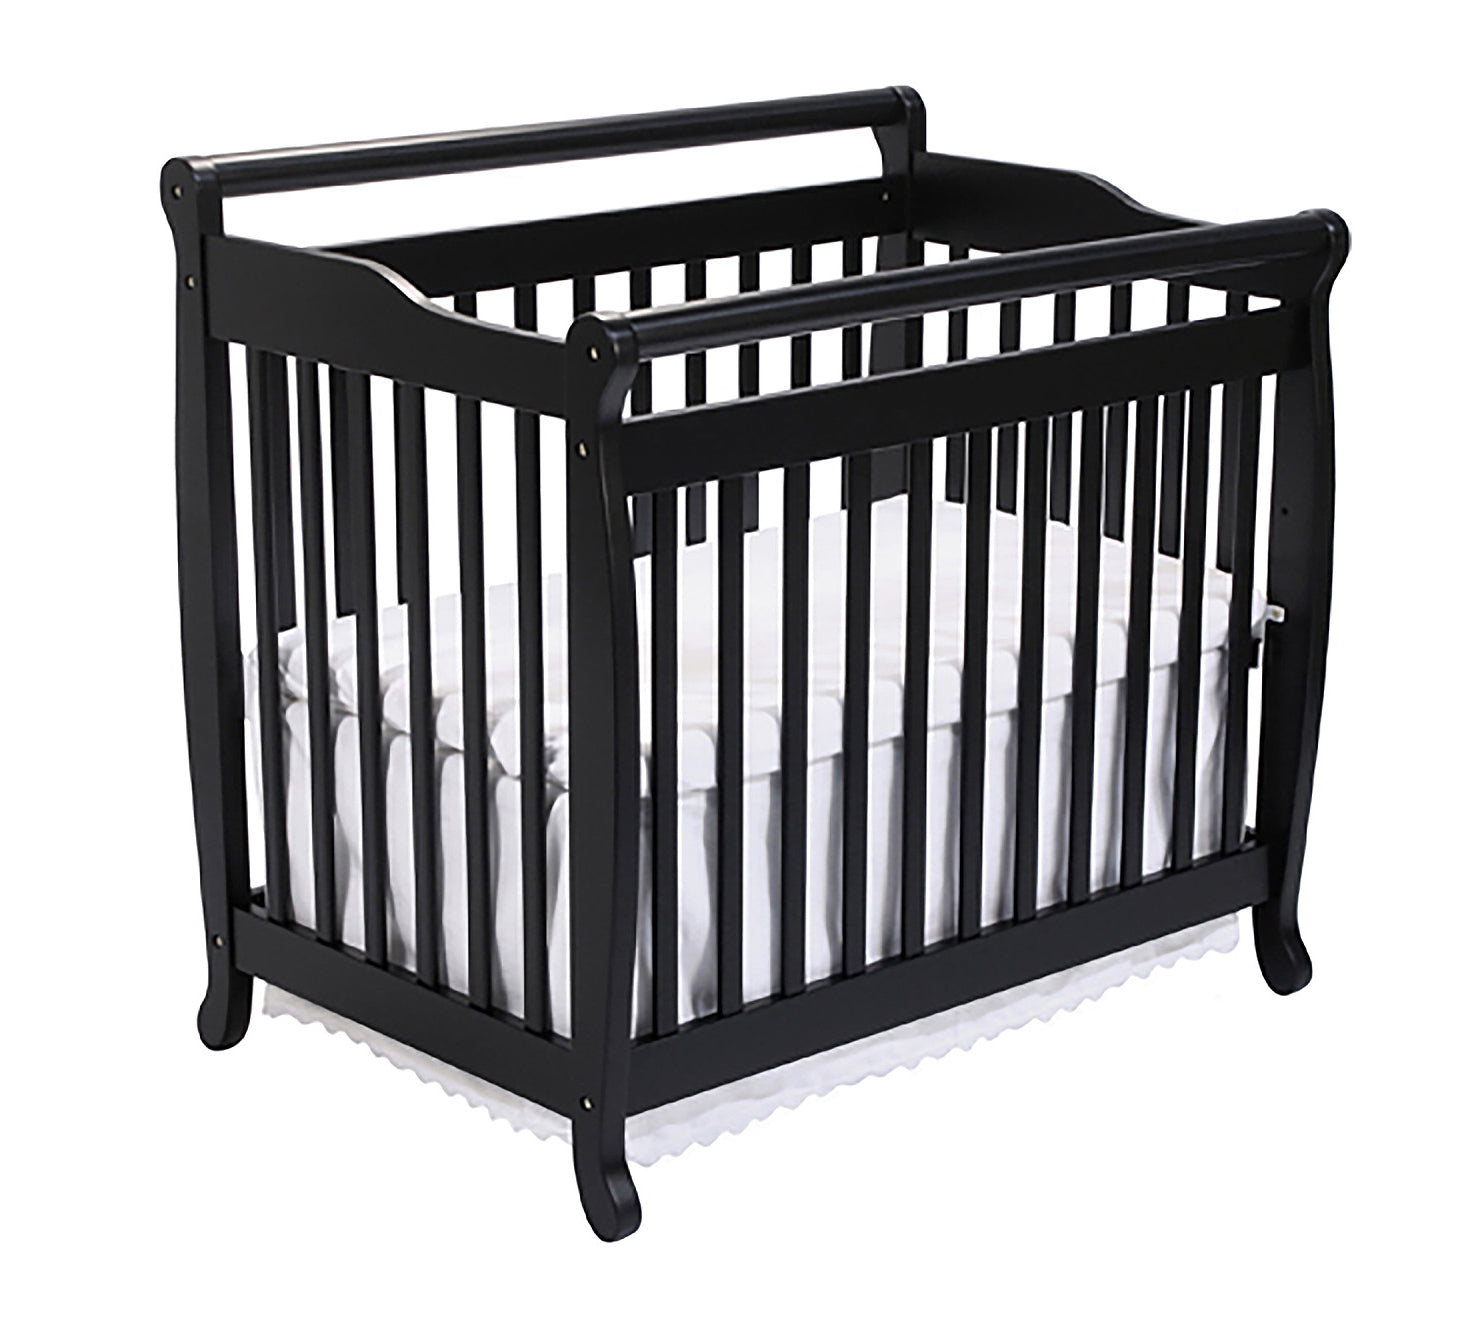 it a changer crib convertible cribs in love pin stork combo our top portofino we craft baby is and why the include